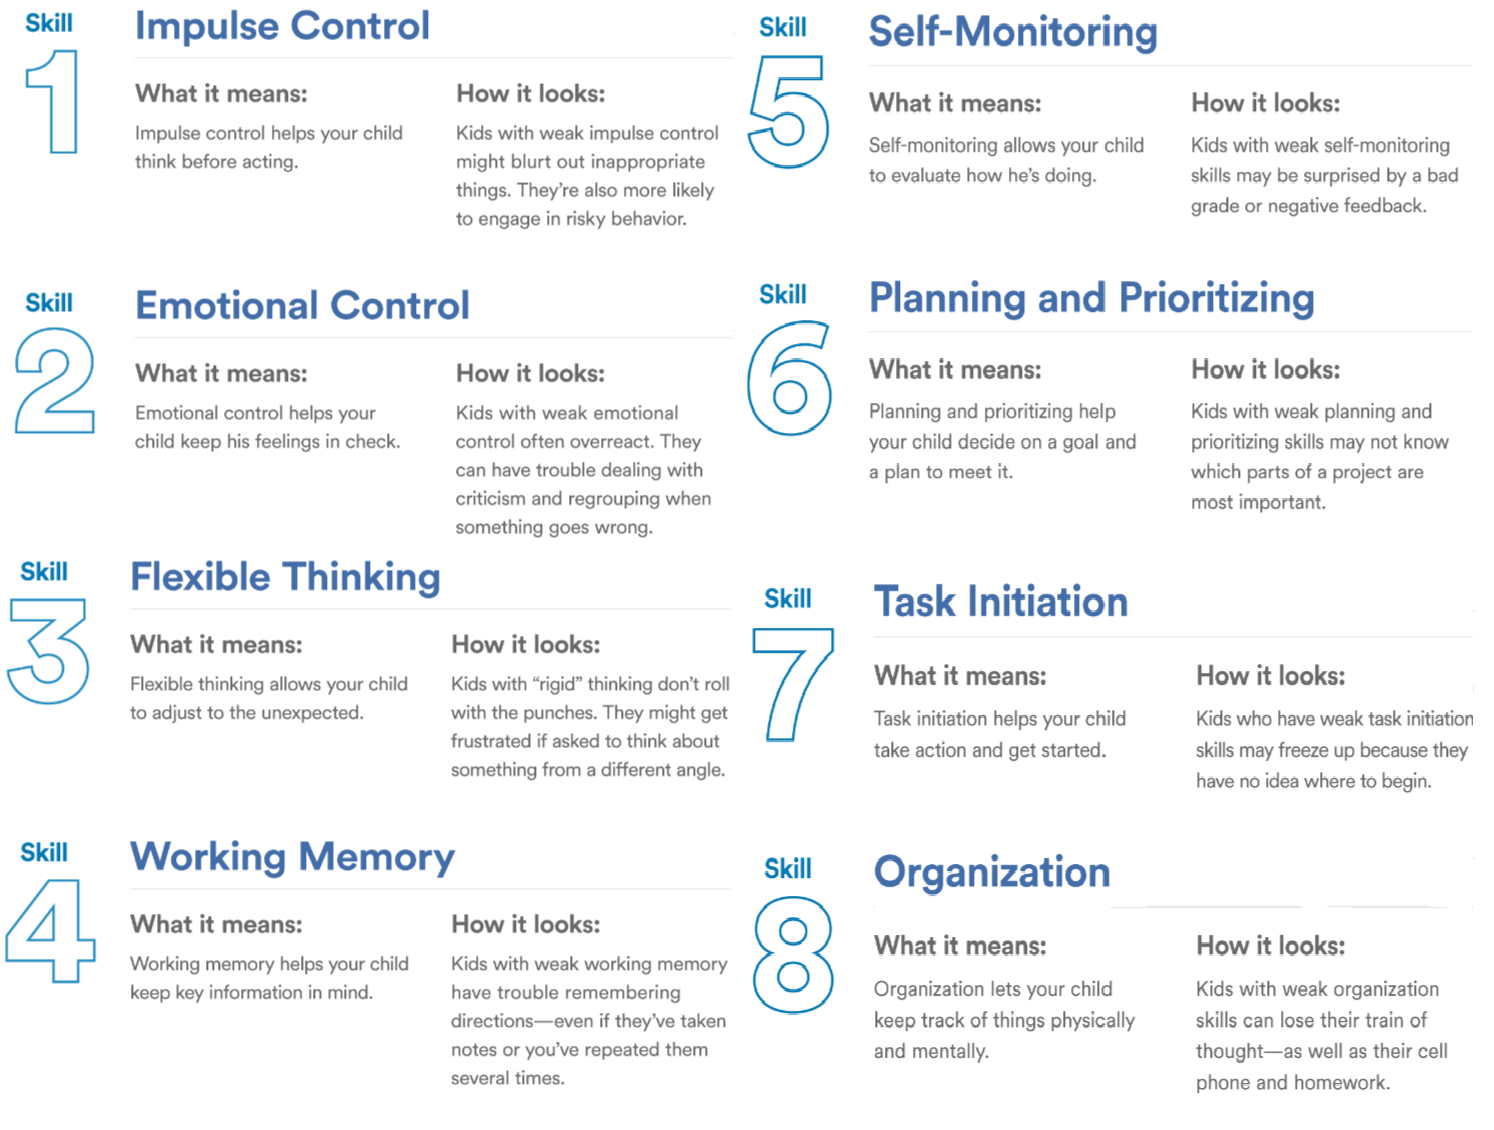 Executive functions. Source: https://www.understood.org